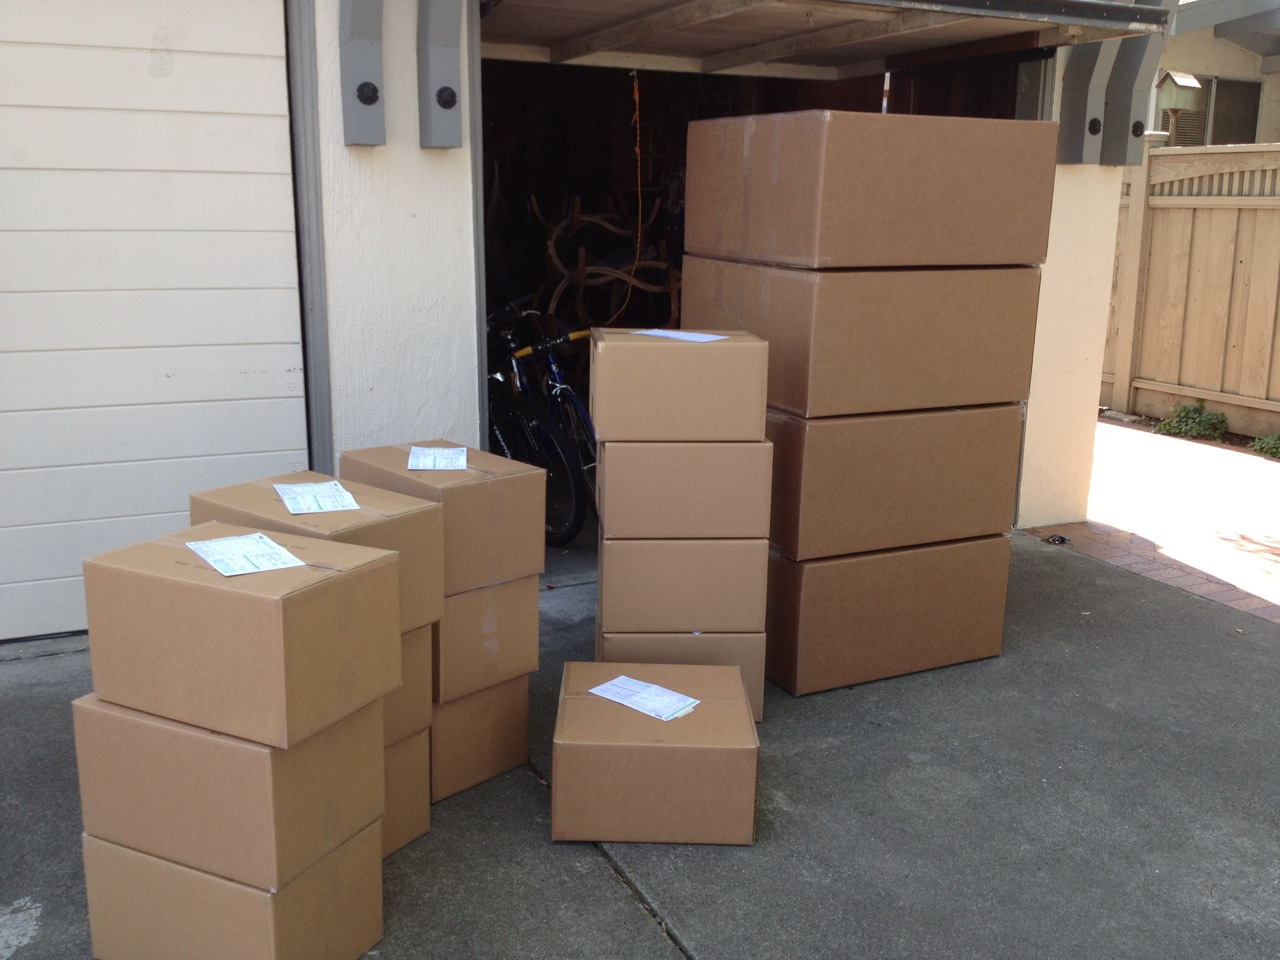 The first batch of boxes I took to FedEx. Seven more trips followed.